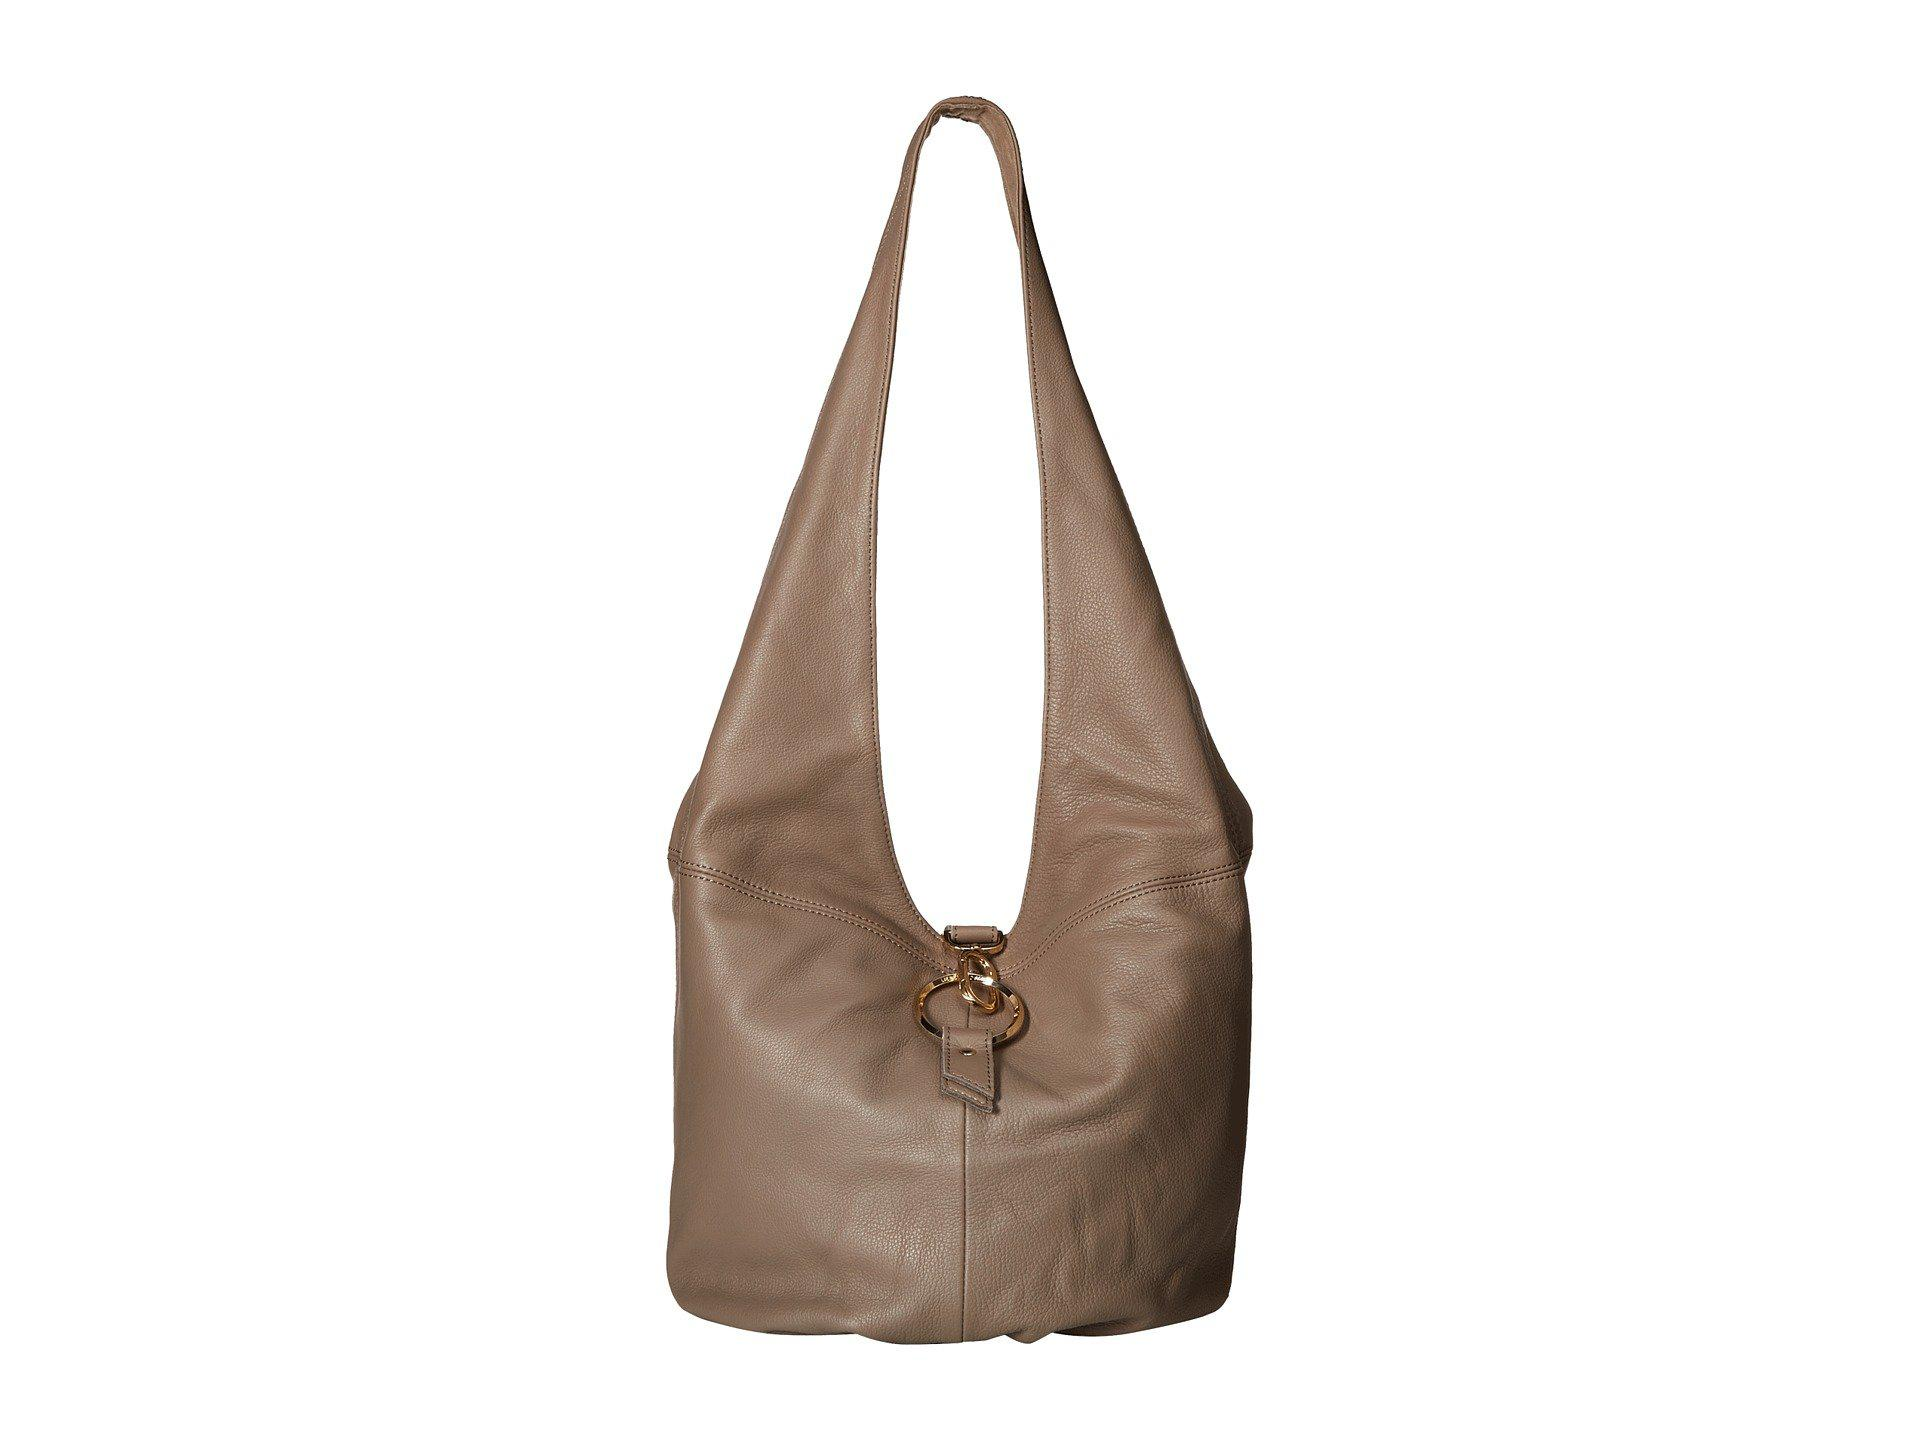 ea52128a7d Lyst - Liebeskind Hobo M - Bobo H6 (cold Grey) Hobo Handbags in Gray